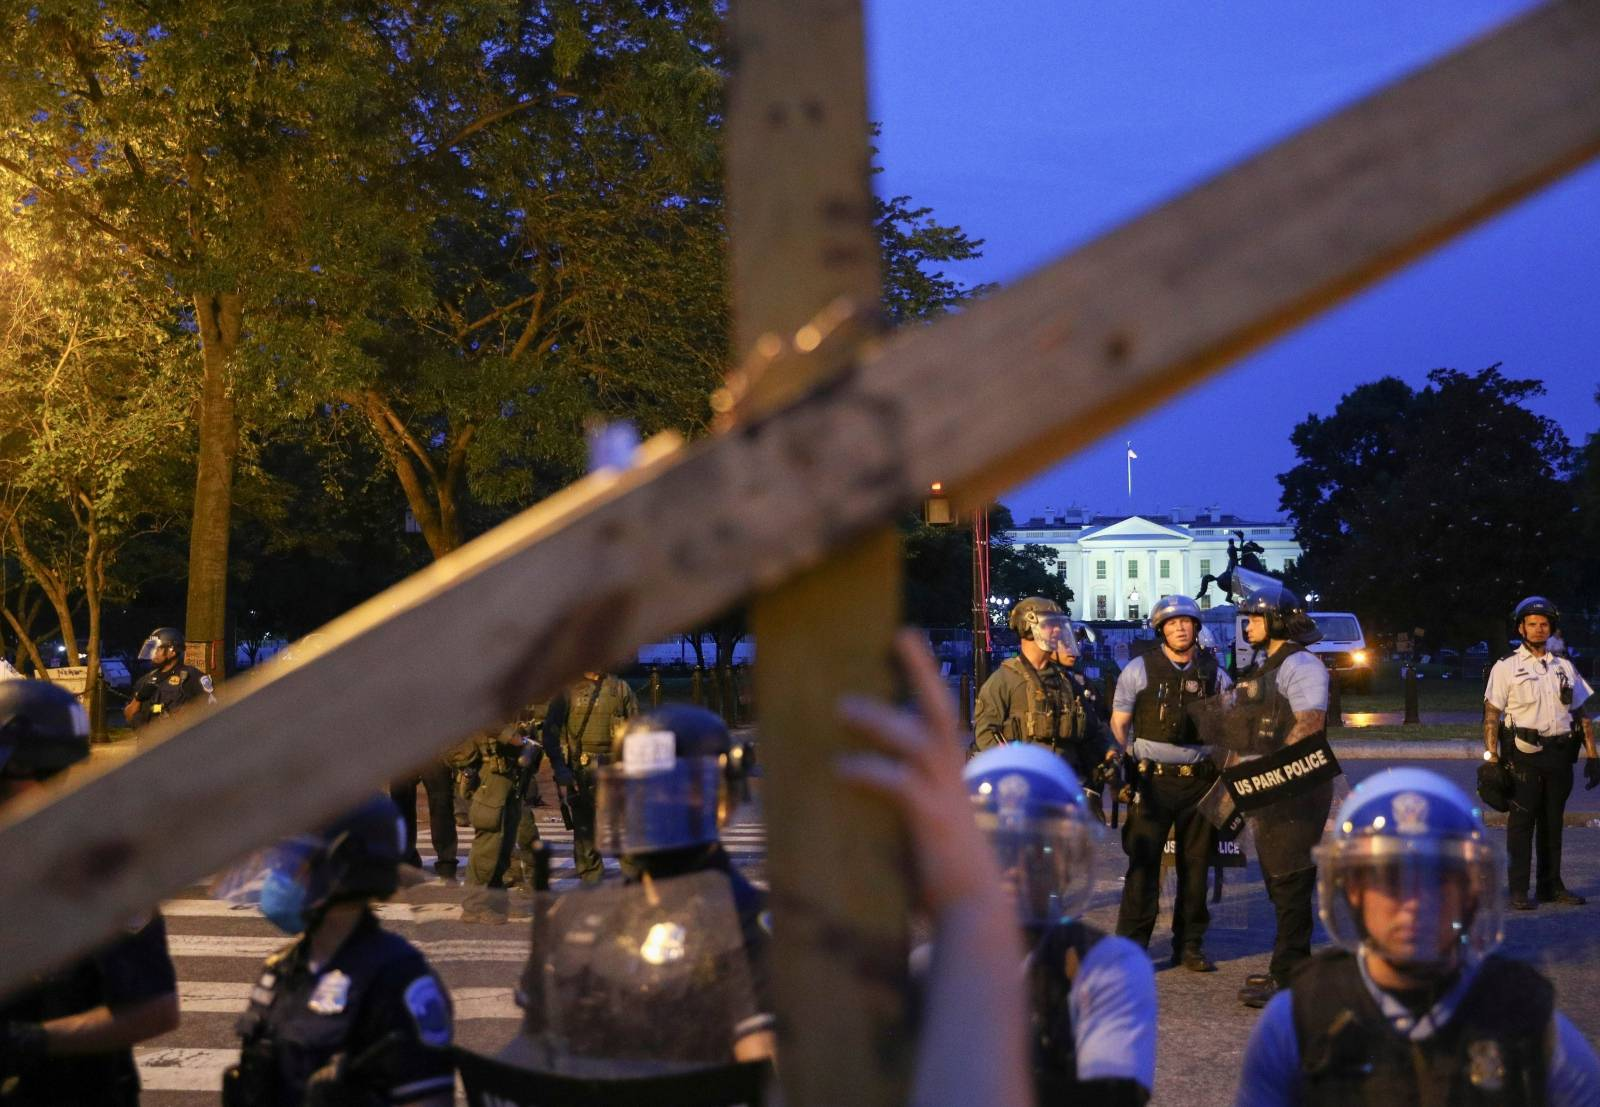 Protestors and police face off by the White House after clashes between police and protestors attempting to pull down statue of U.S. President Andrew Jackson in Washington